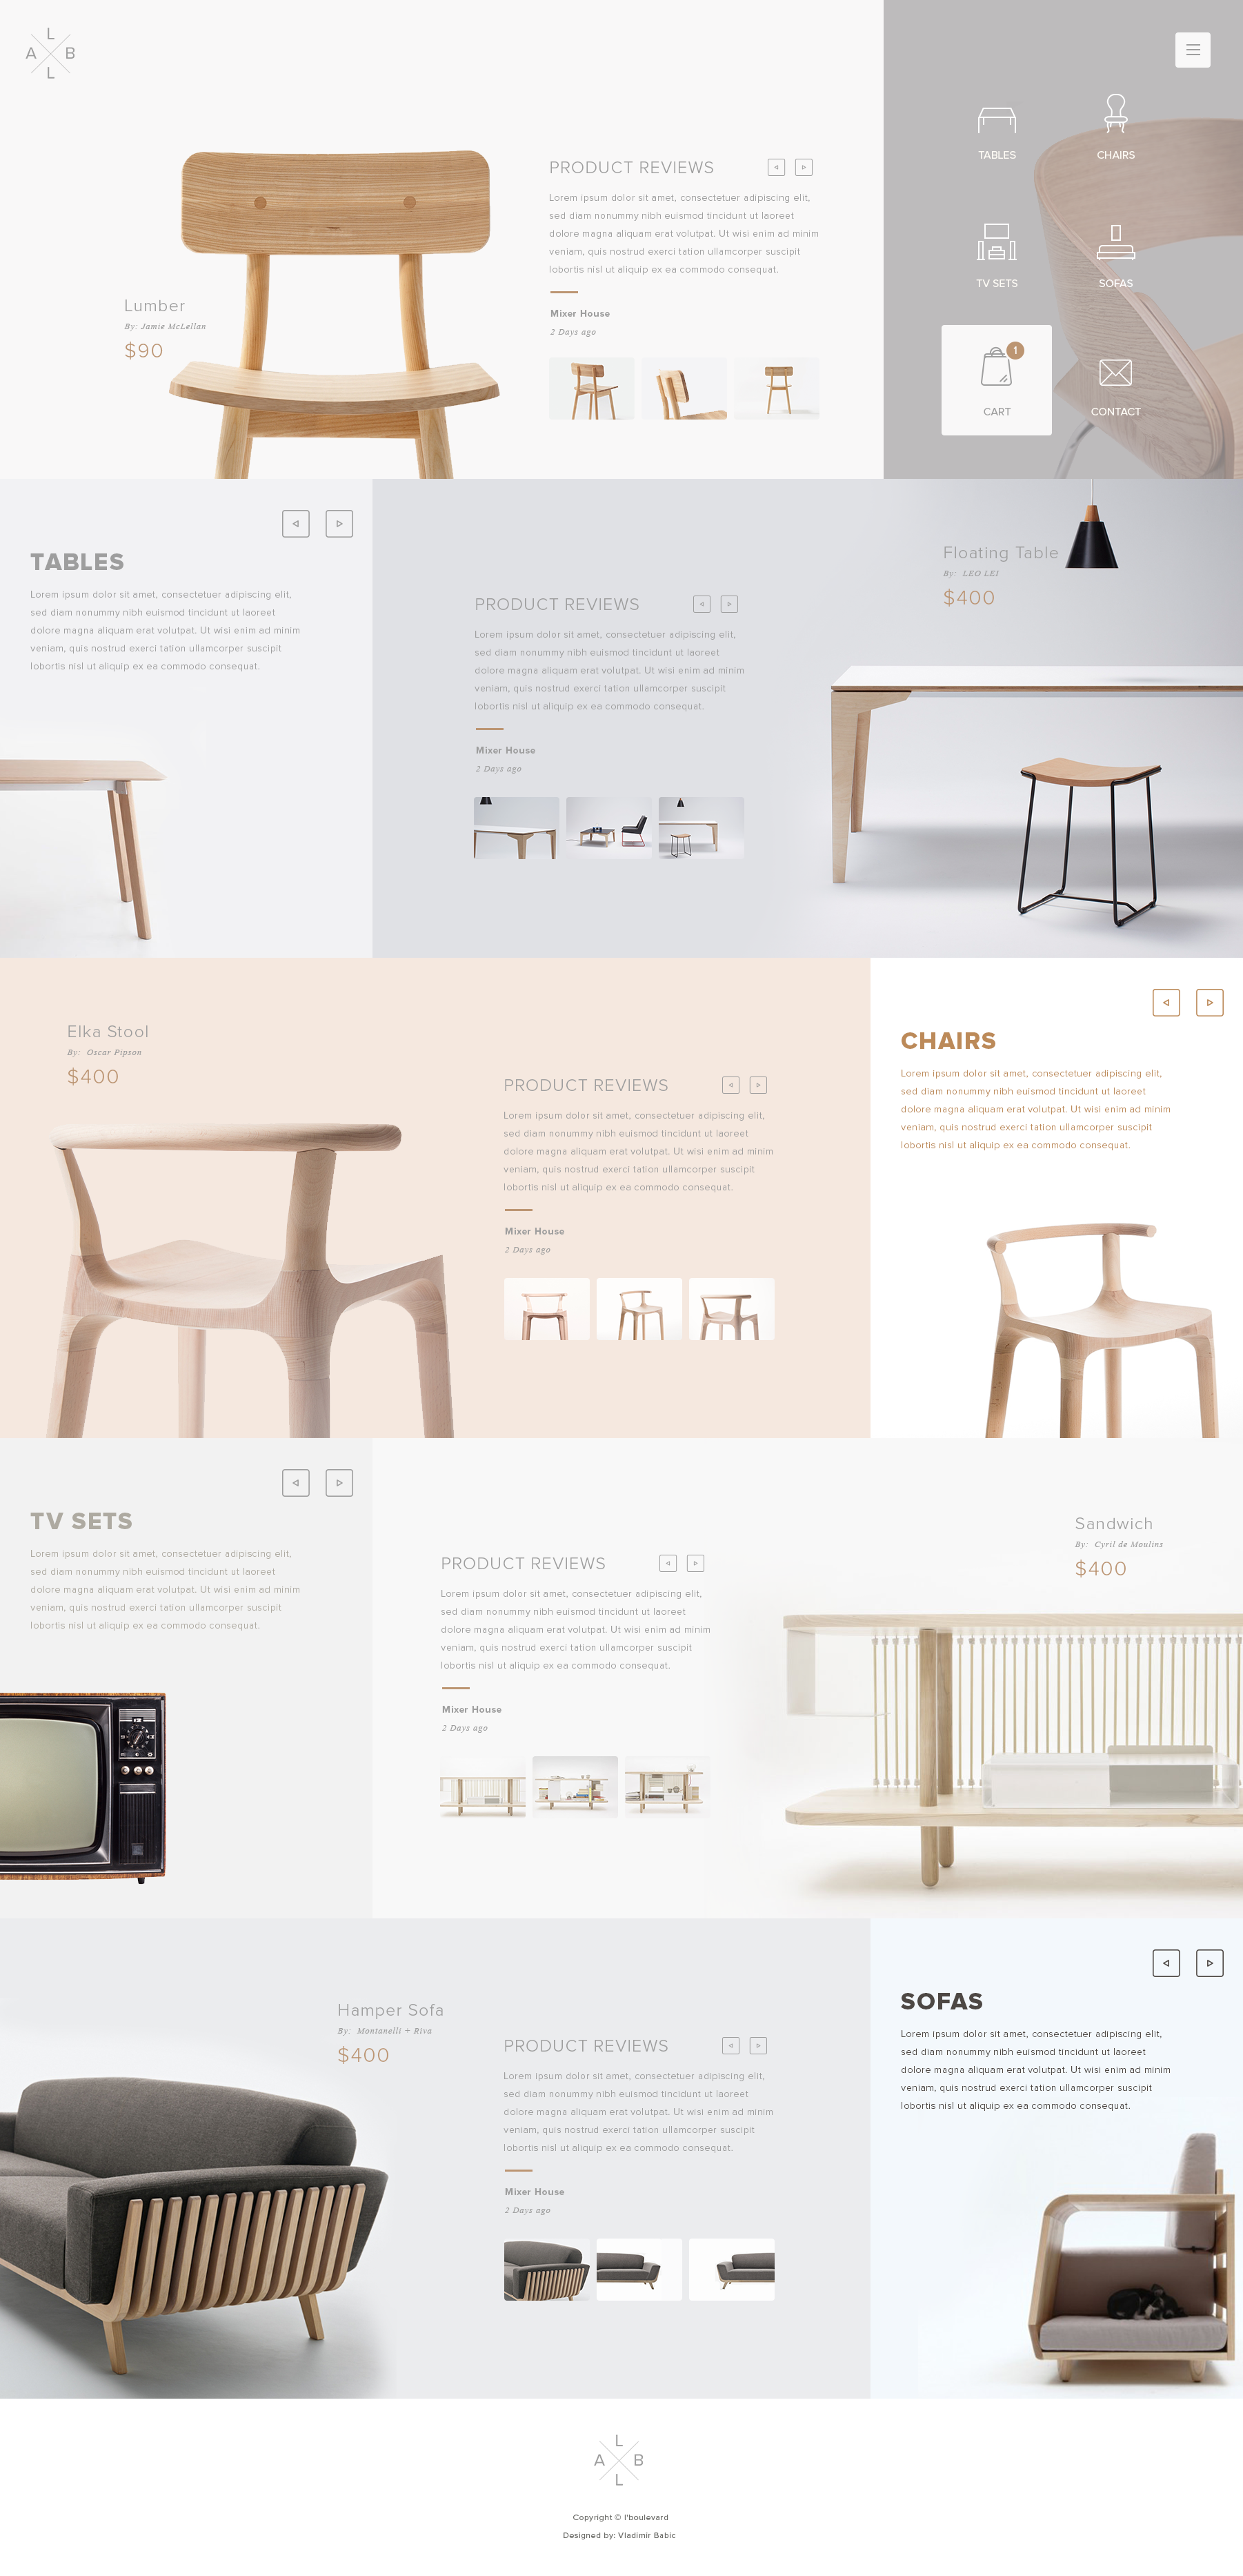 Cool layout possibilities when showcasing products & Web design inspiration | I N T E R A C T I V E | Pinterest | Layouts ...